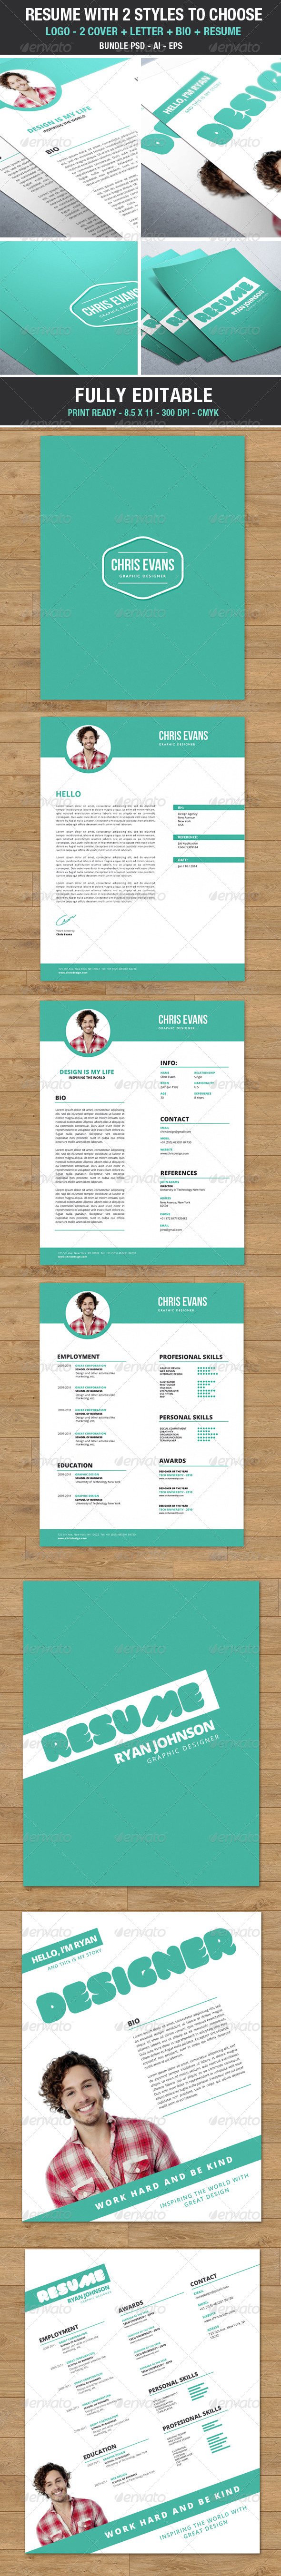 Clean Modern Resume 2 styles to choose - Bundle - Resumes Stationery